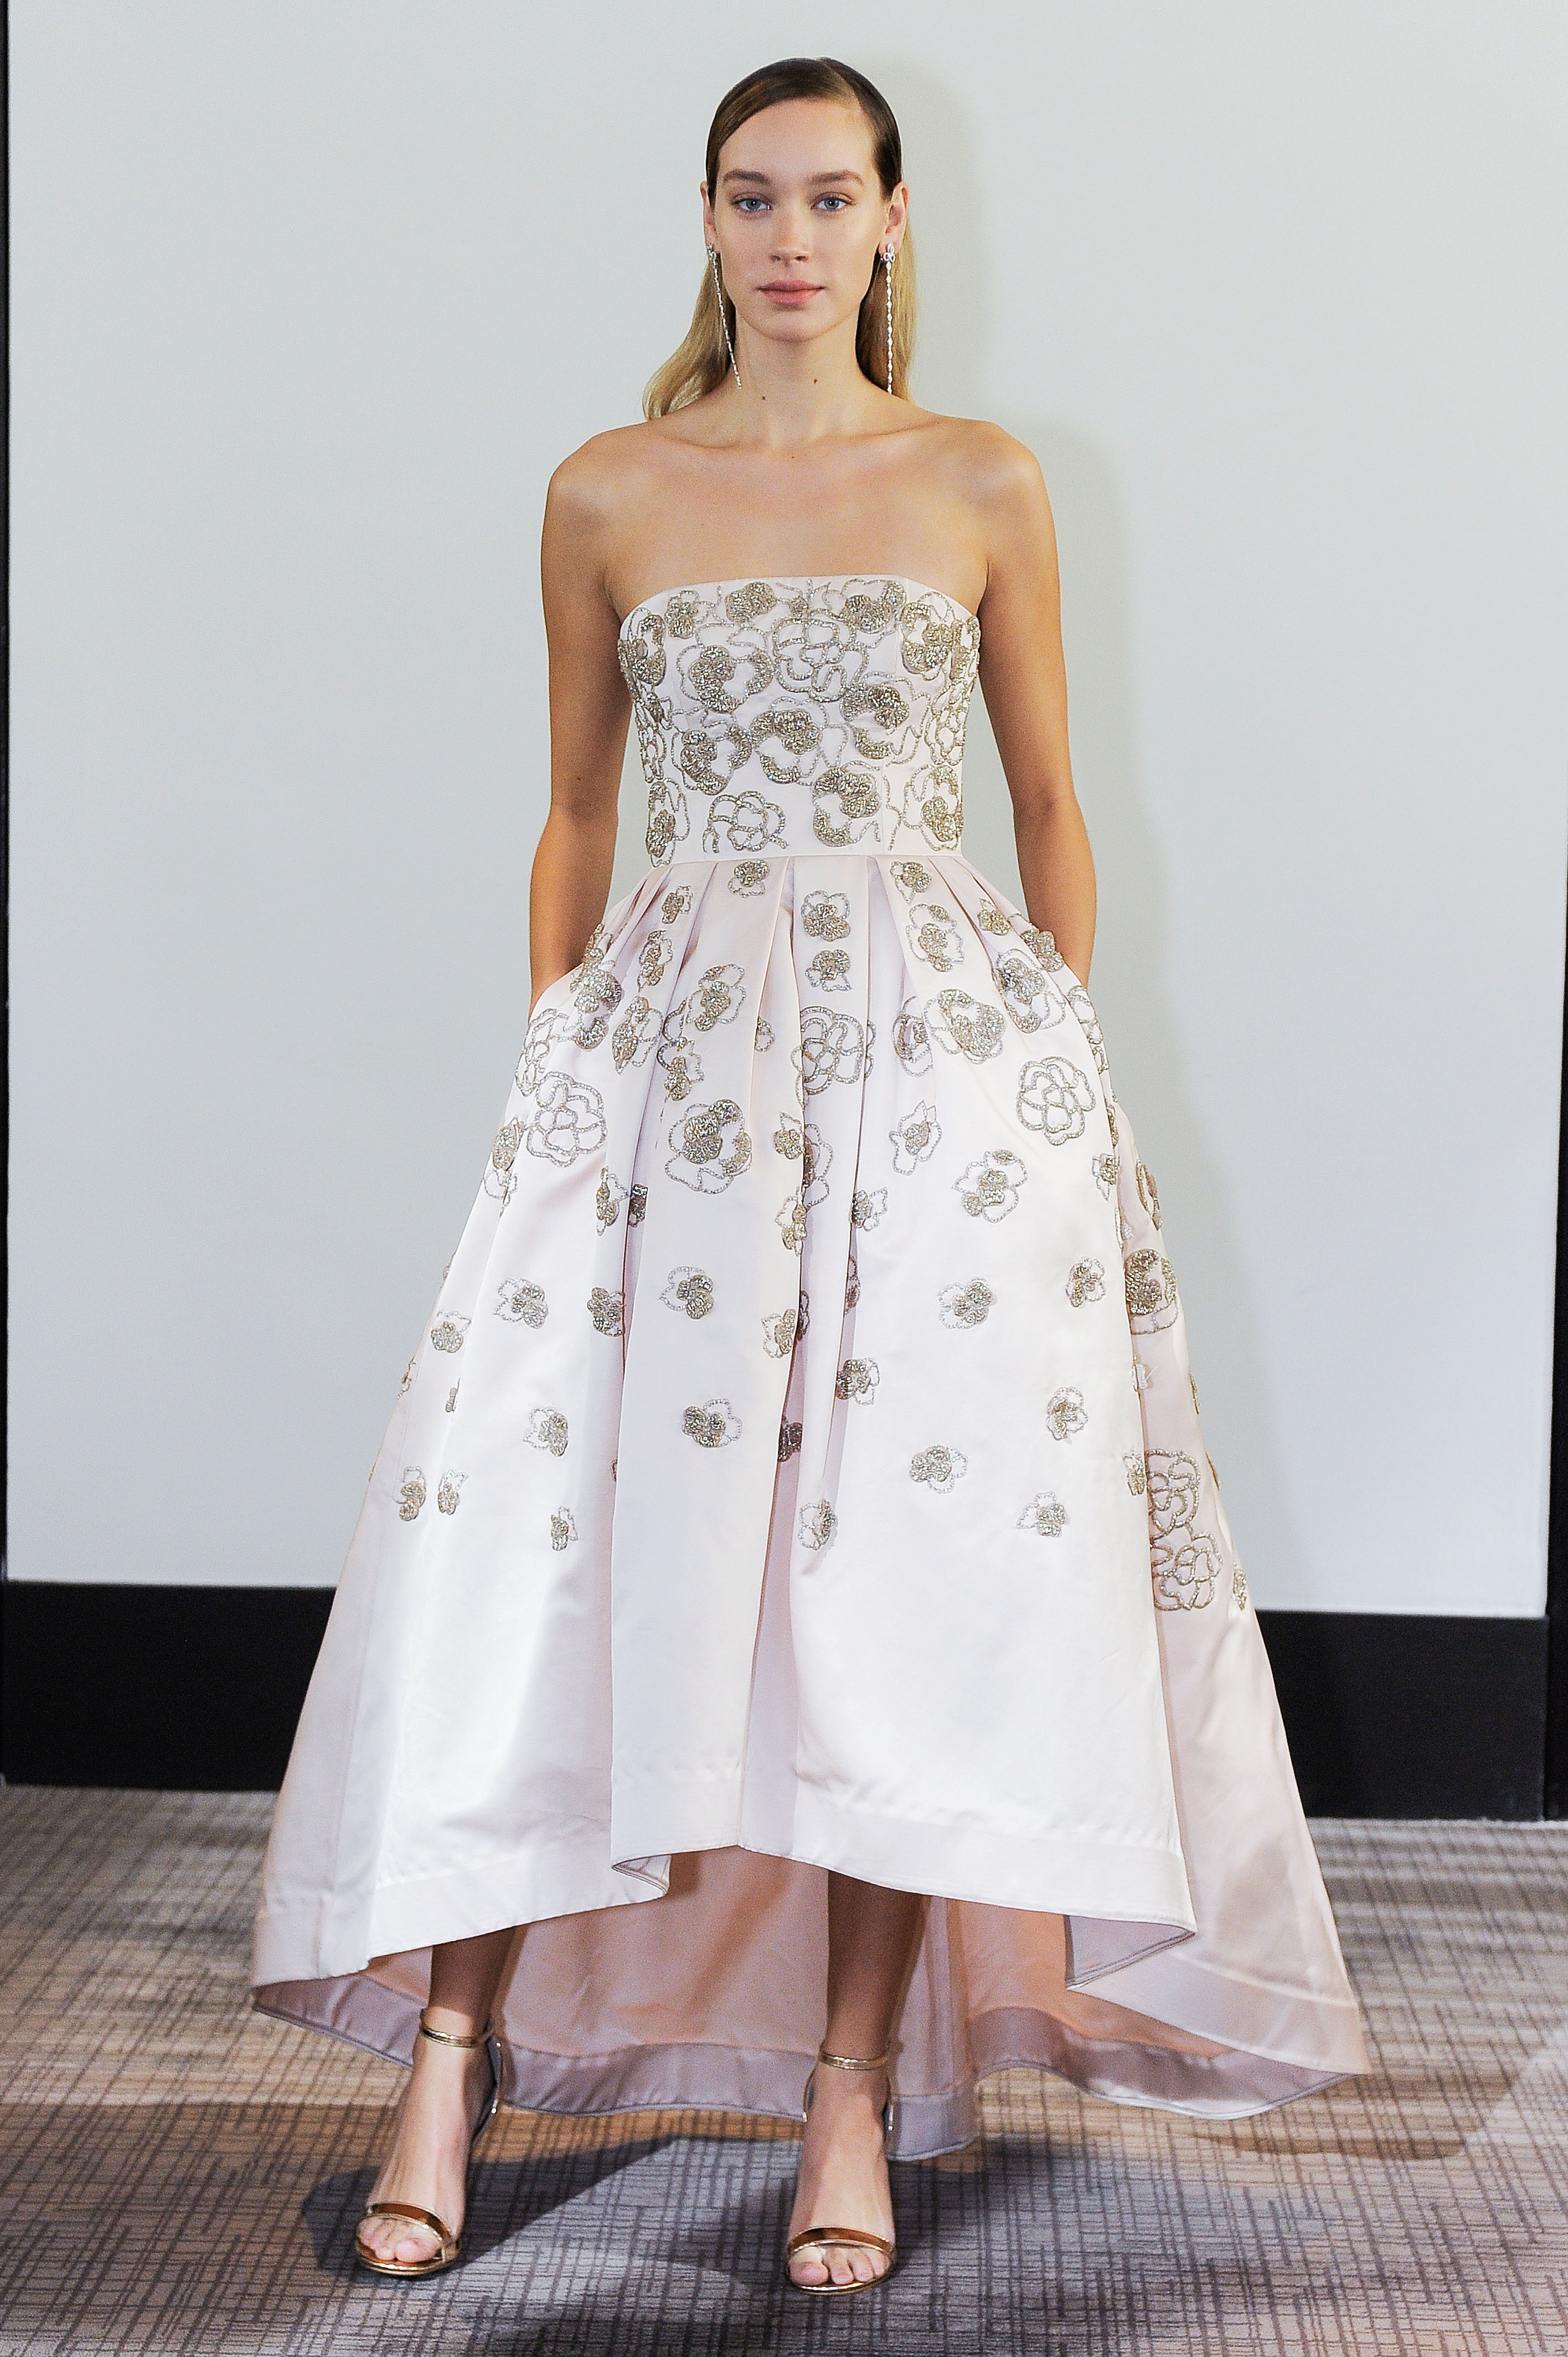 gracy accad strapless a-line wedding dress fall 2018